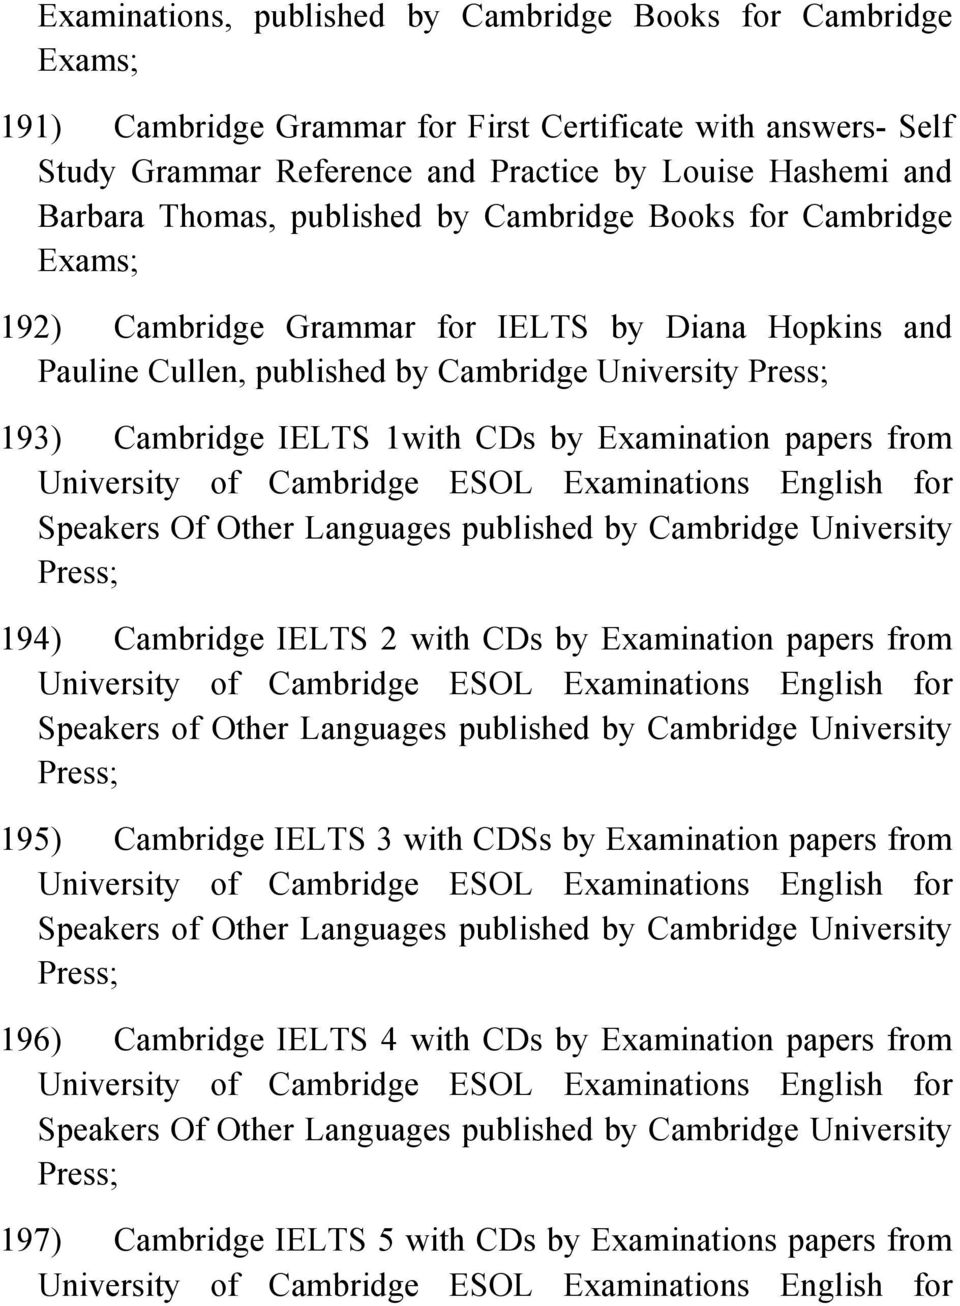 By Examination Papers From University Of Cambridge ESOL Examinations English For Speakers Other Languages Published